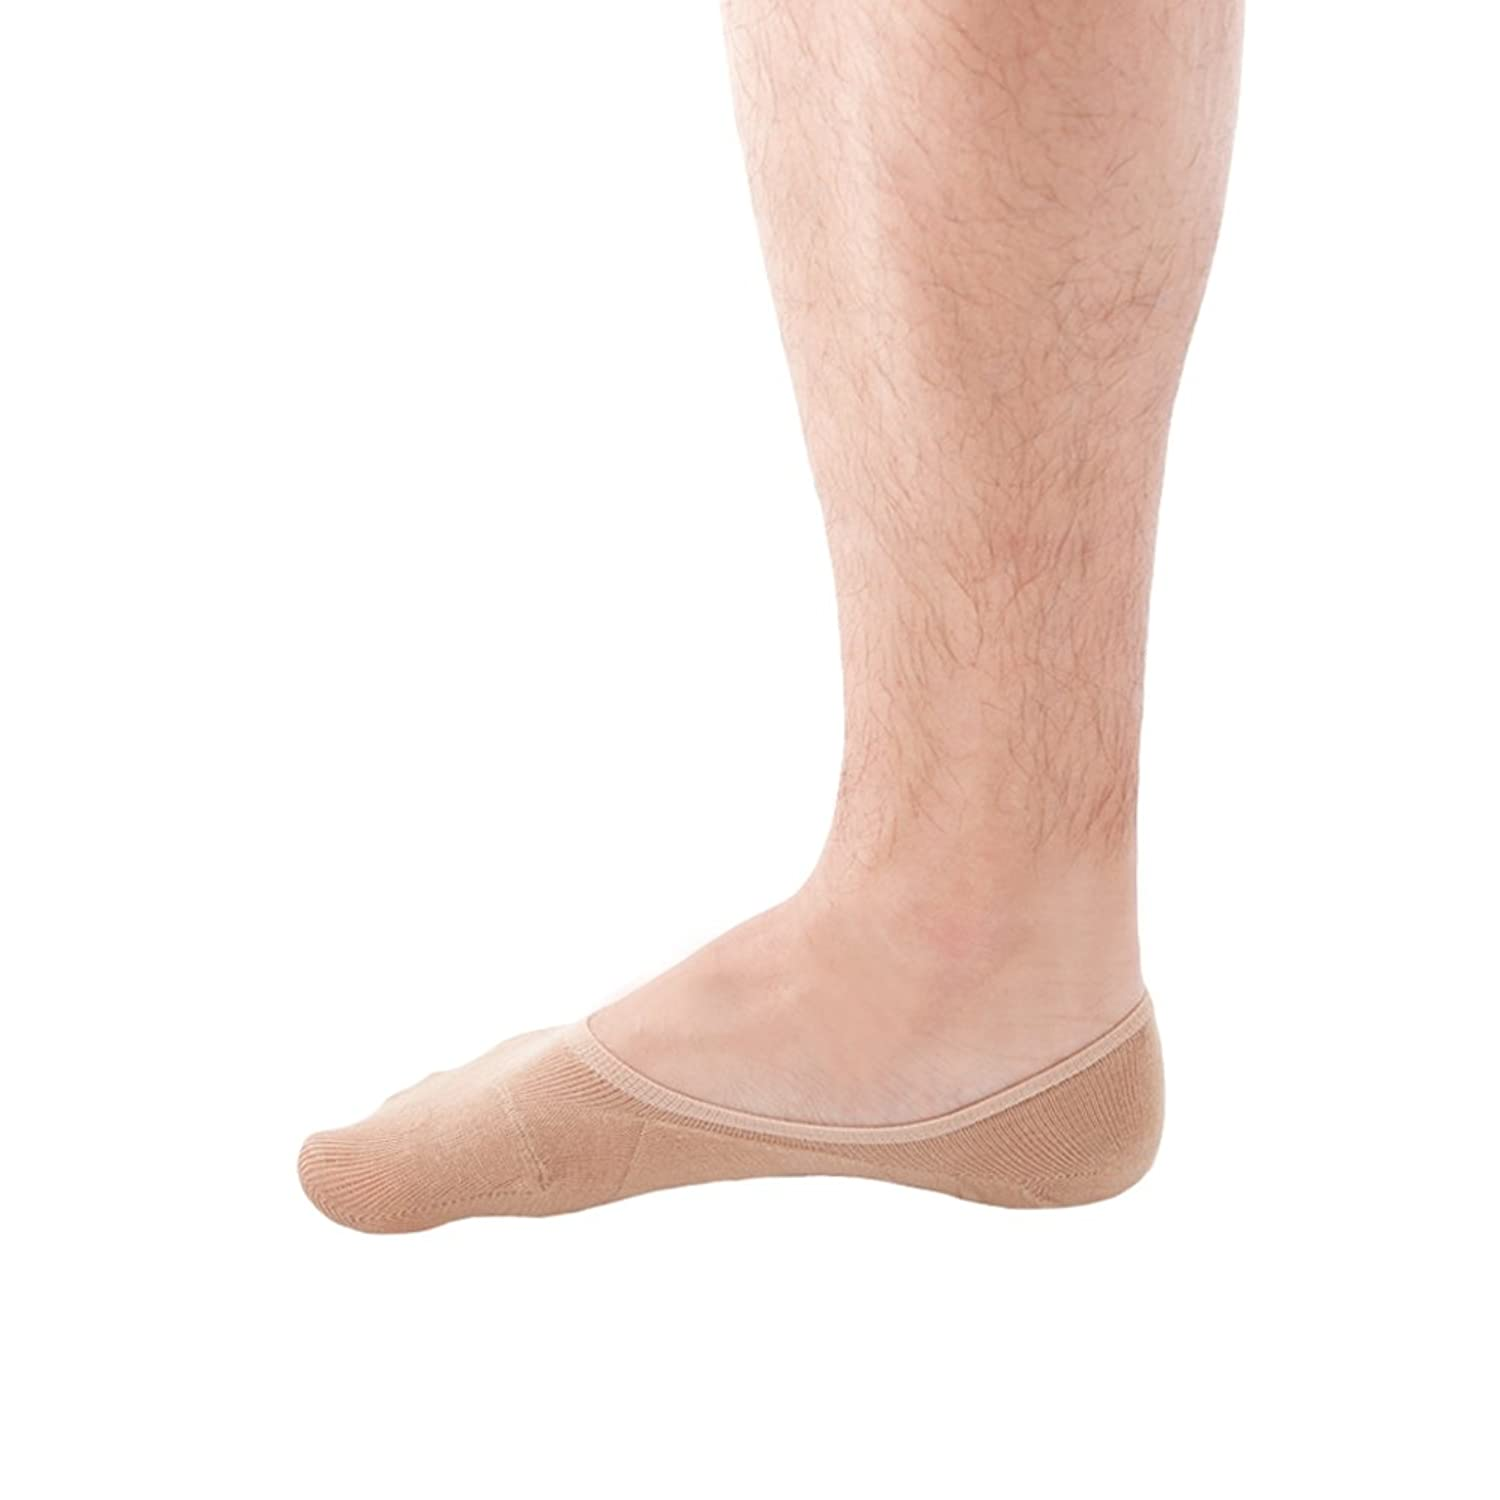 SHEEC - SoleHugger ACTIVE - No-Show Hidden Socks for Men *Non-Slip*